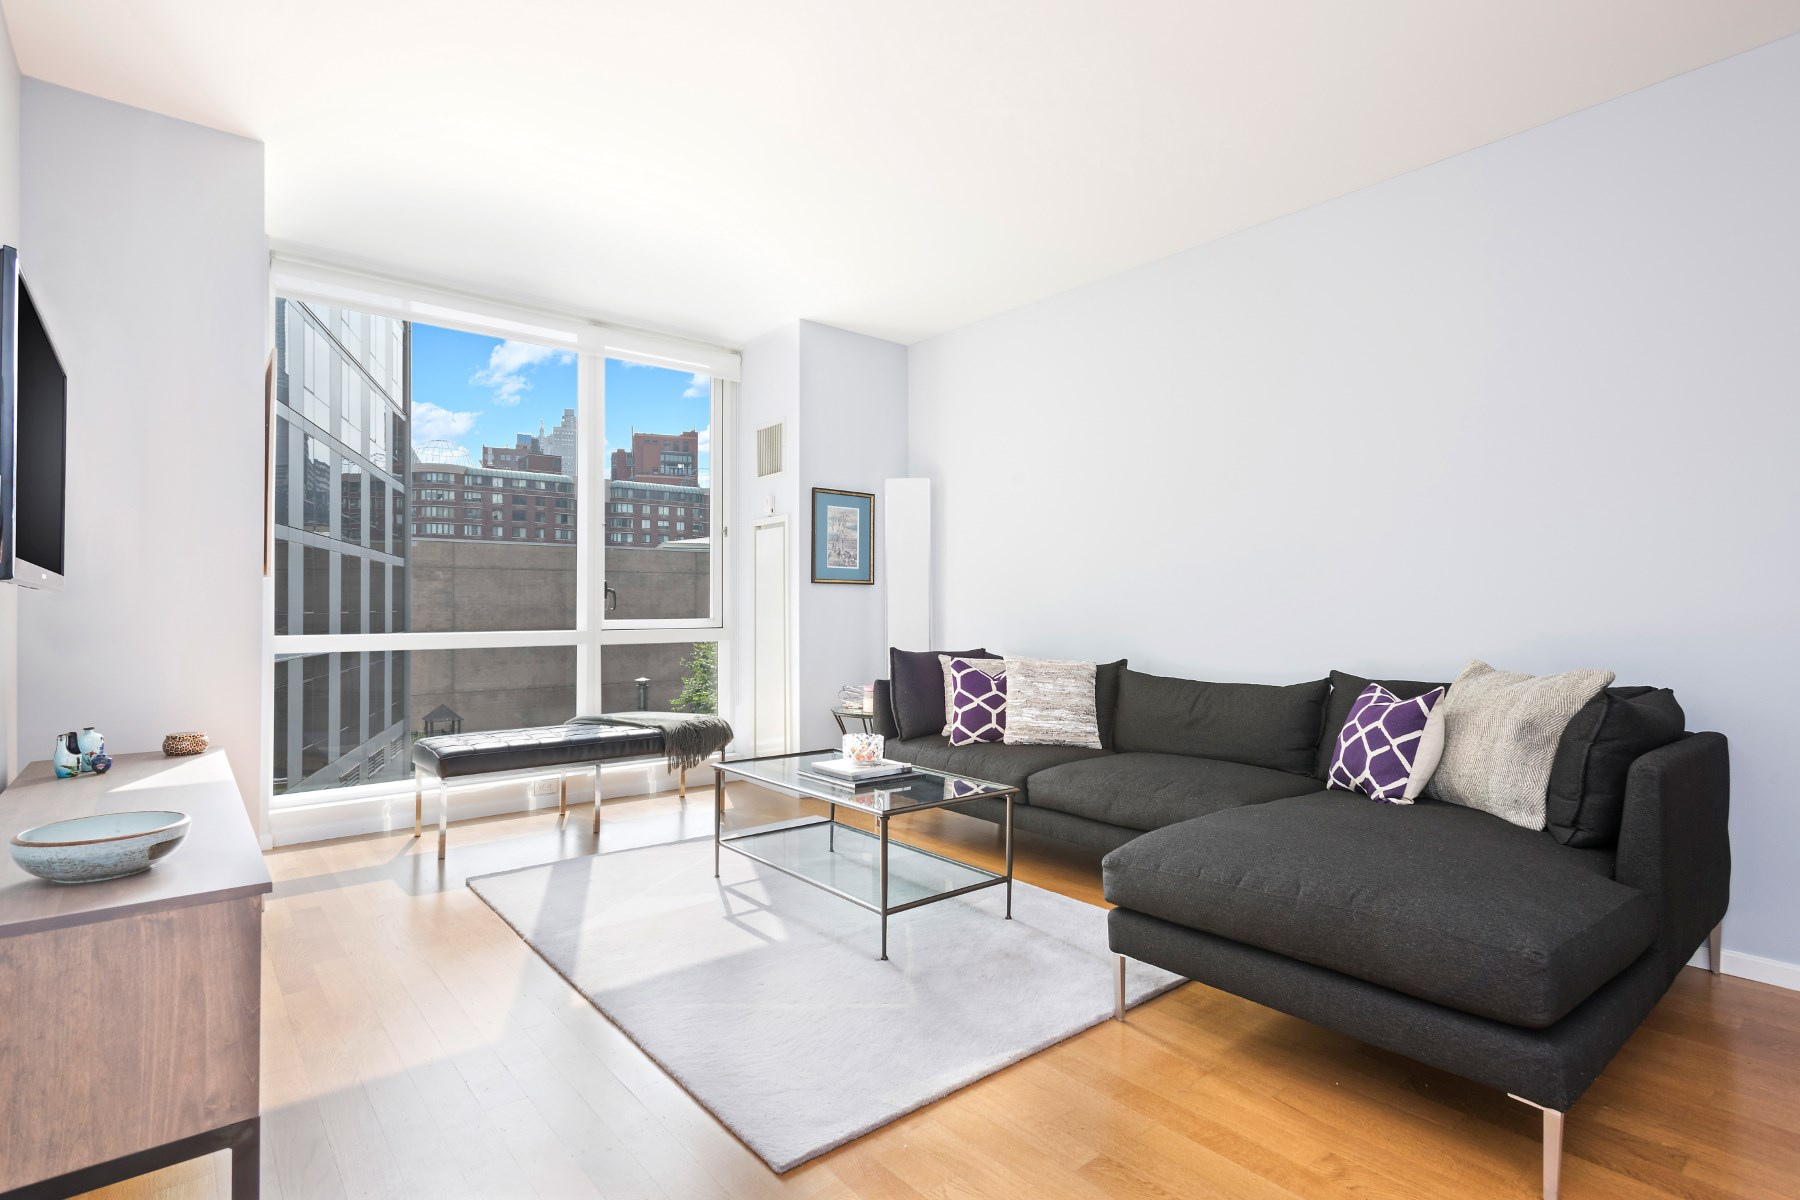 Condominium for Sale at 200 Chambers Street, 3F 200 Chambers Street Apt 3f Tribeca, New York, New York 10007 United States